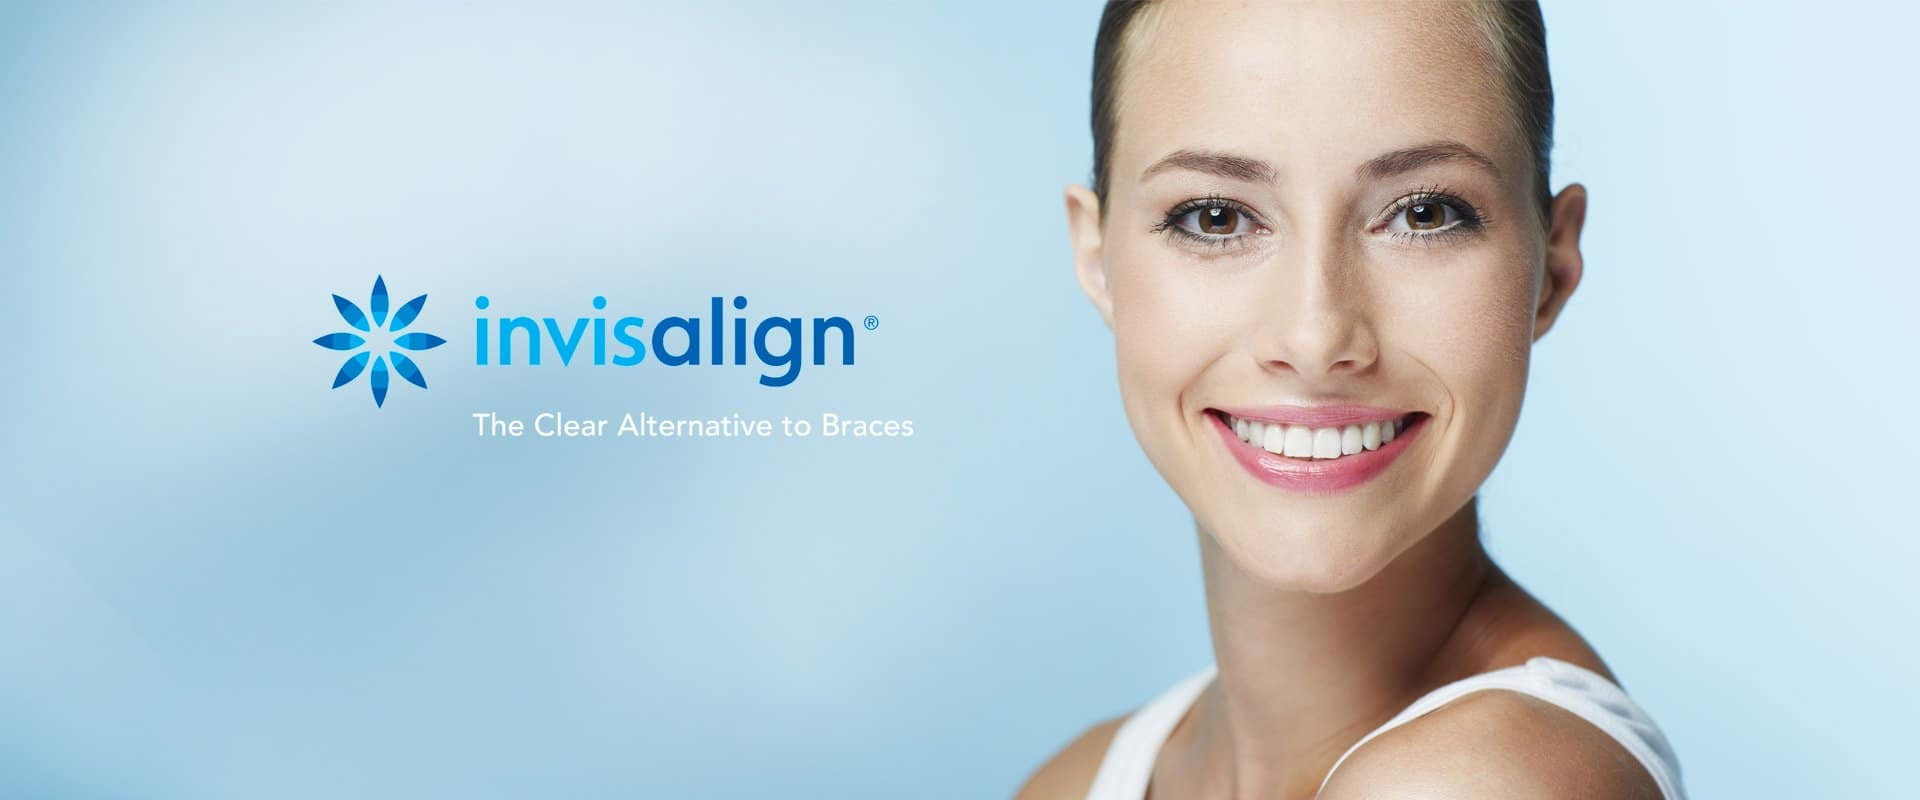 jericho smiles long island NY invisalign orthodontist